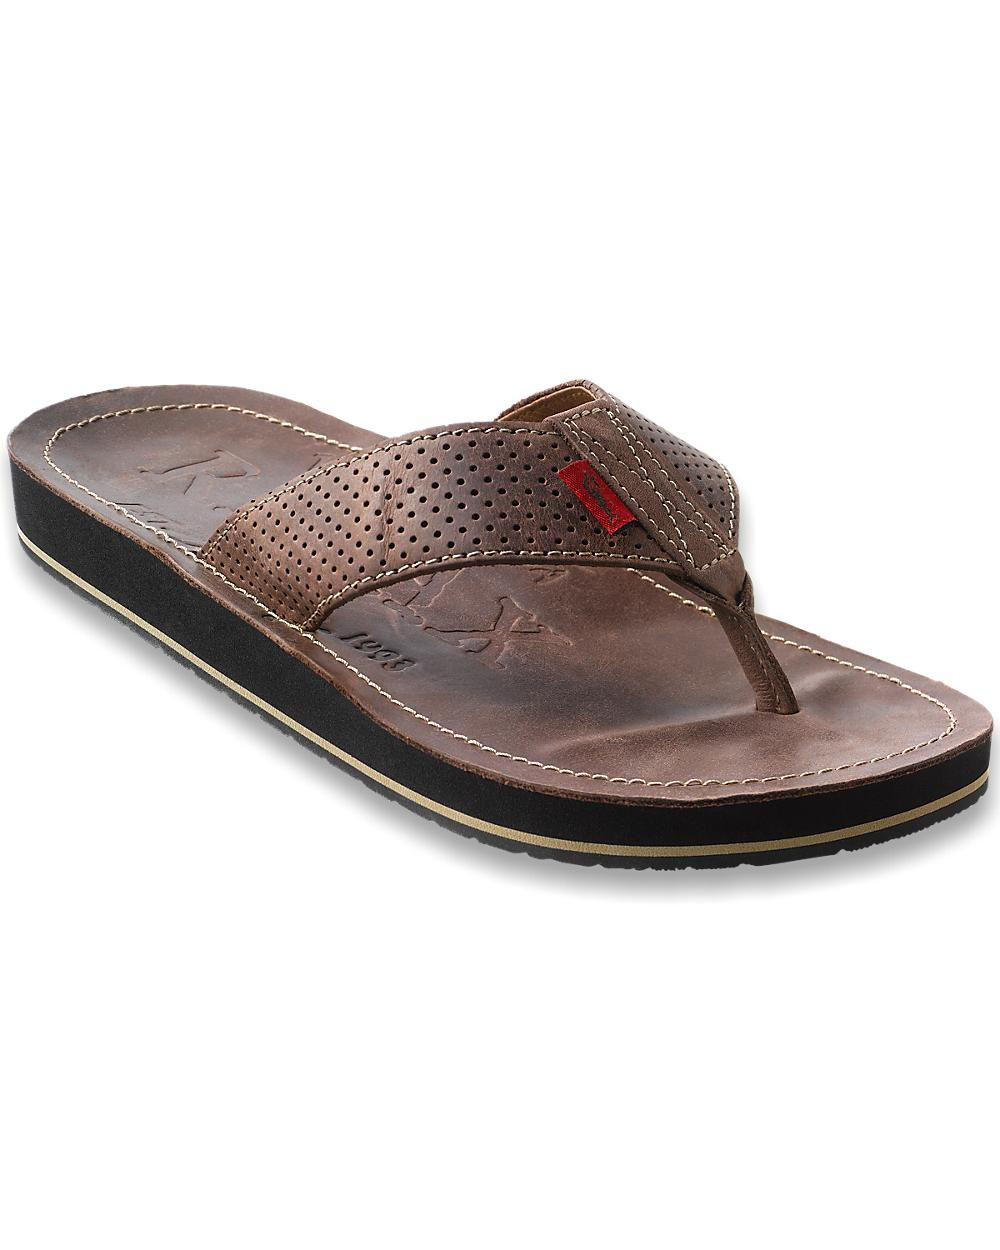 Mens leather sandals, Gents slippers